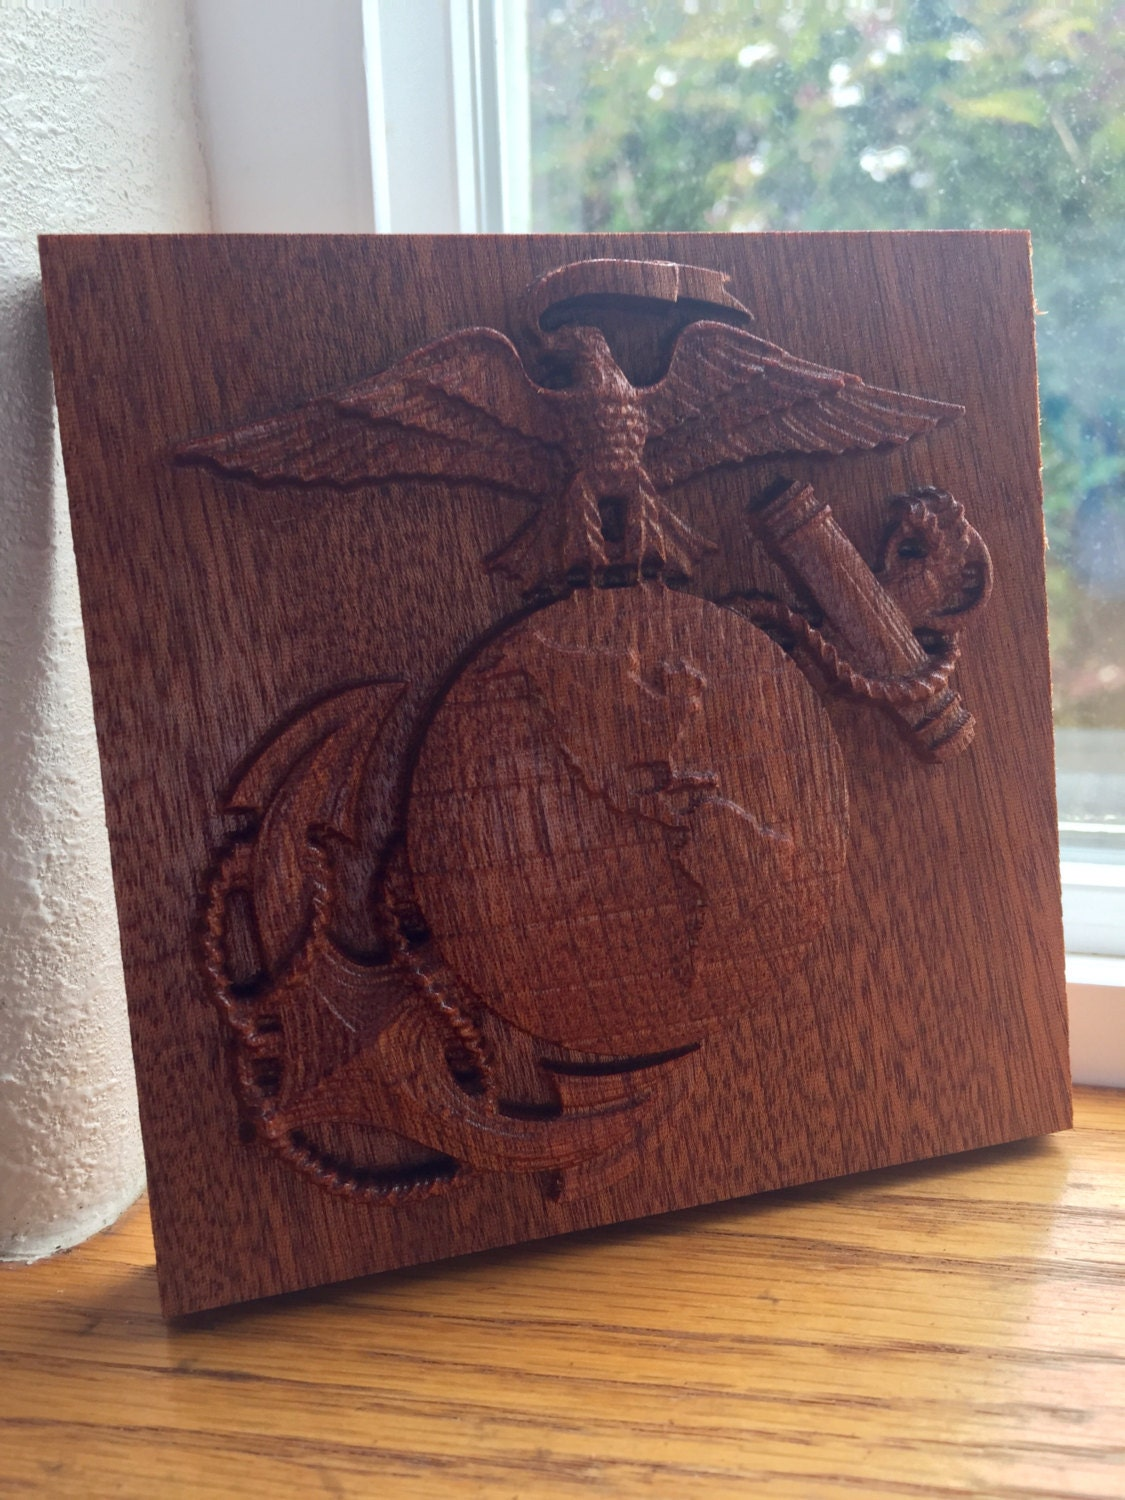 Us marine corps emblem carved in sapele wood